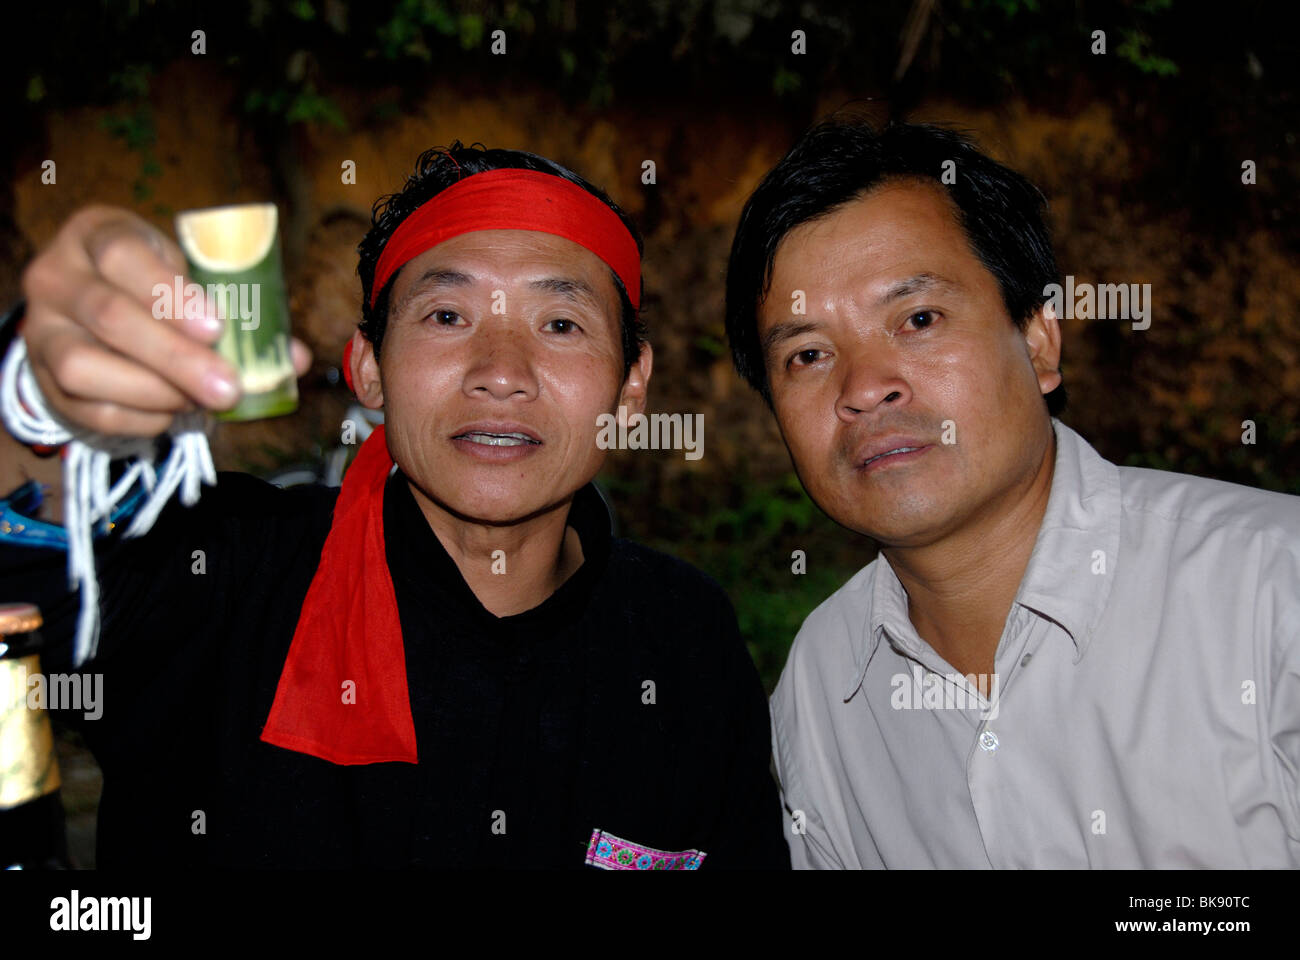 Cheers, men of the Phunoi ethnicity clinking glasses with Lao Lao, Laotian rice wine in bamboo vessels, Phongsali, - Stock Image